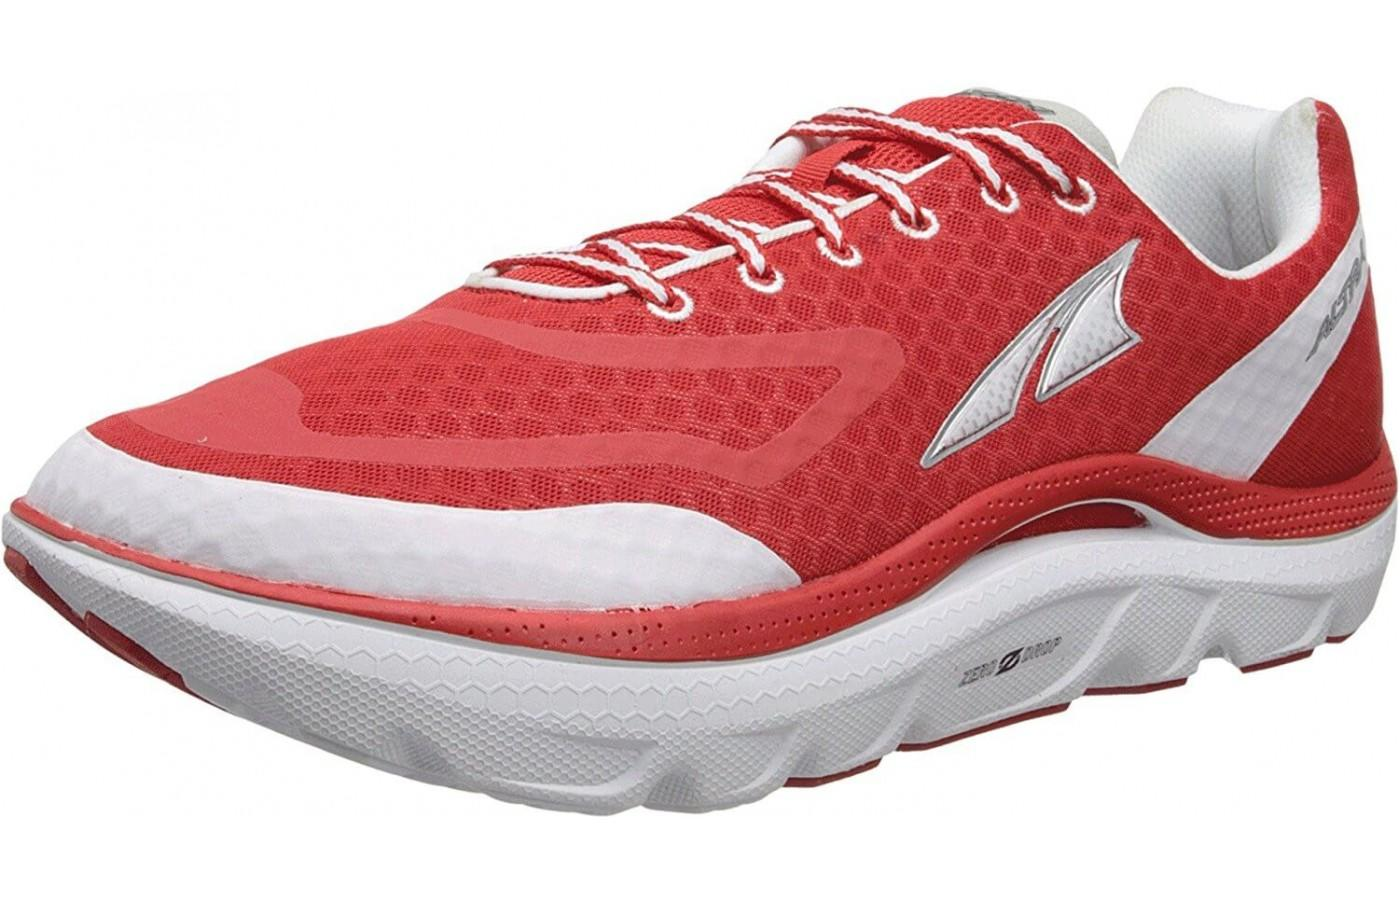 the Altra Paradigm is a comfortable maximalist trainer